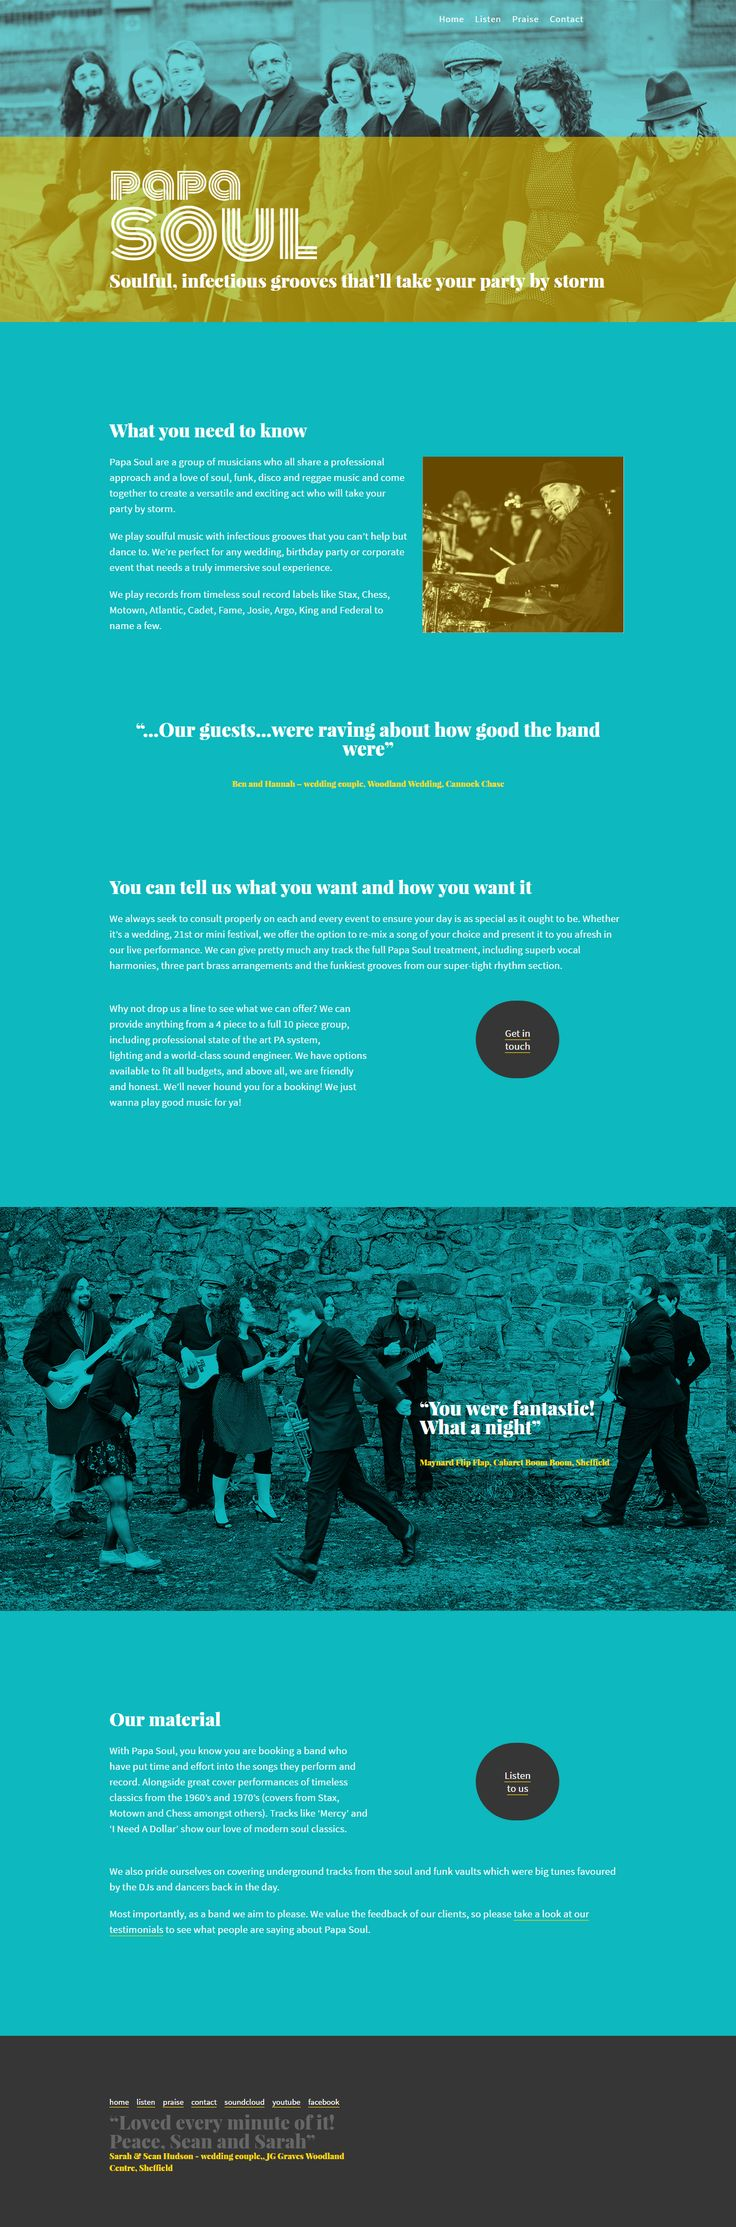 Website design by Engine Head. Designed for soul band Papa Soul. They wanted a reference to classic Blue Note artwork but also a thoroughly modern feel.